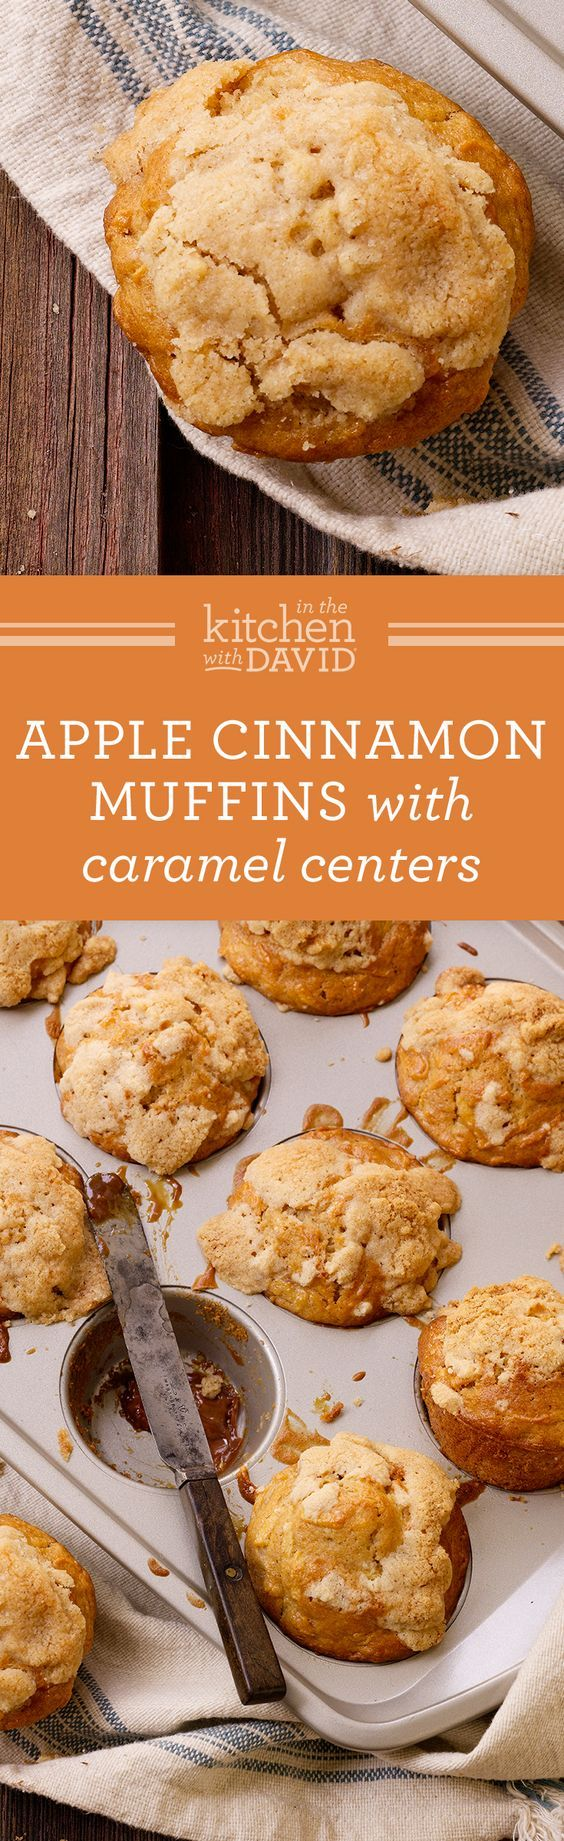 The Most Addicting Apple Cinnamon Muffins With Caramel Centers